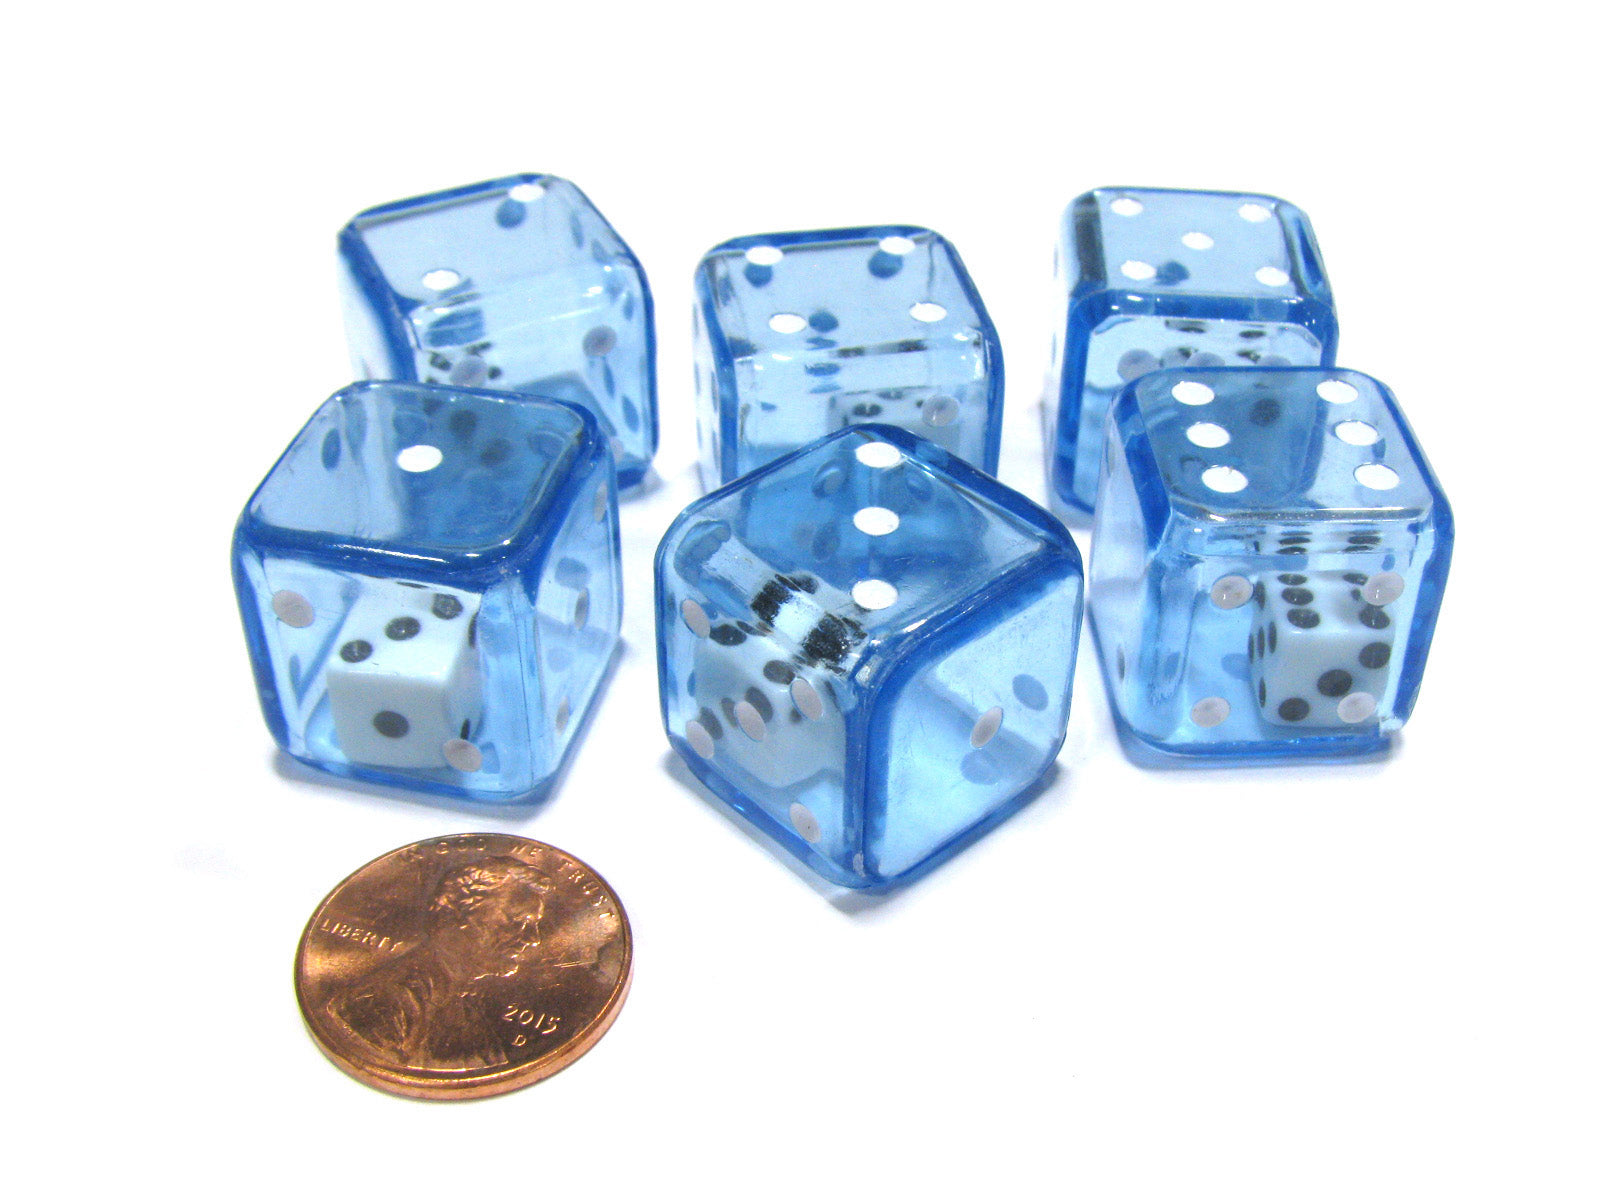 Set of 6 D6 19mm Double Dice, 2-In-1 Dice - White Inside Translucent Blue Die